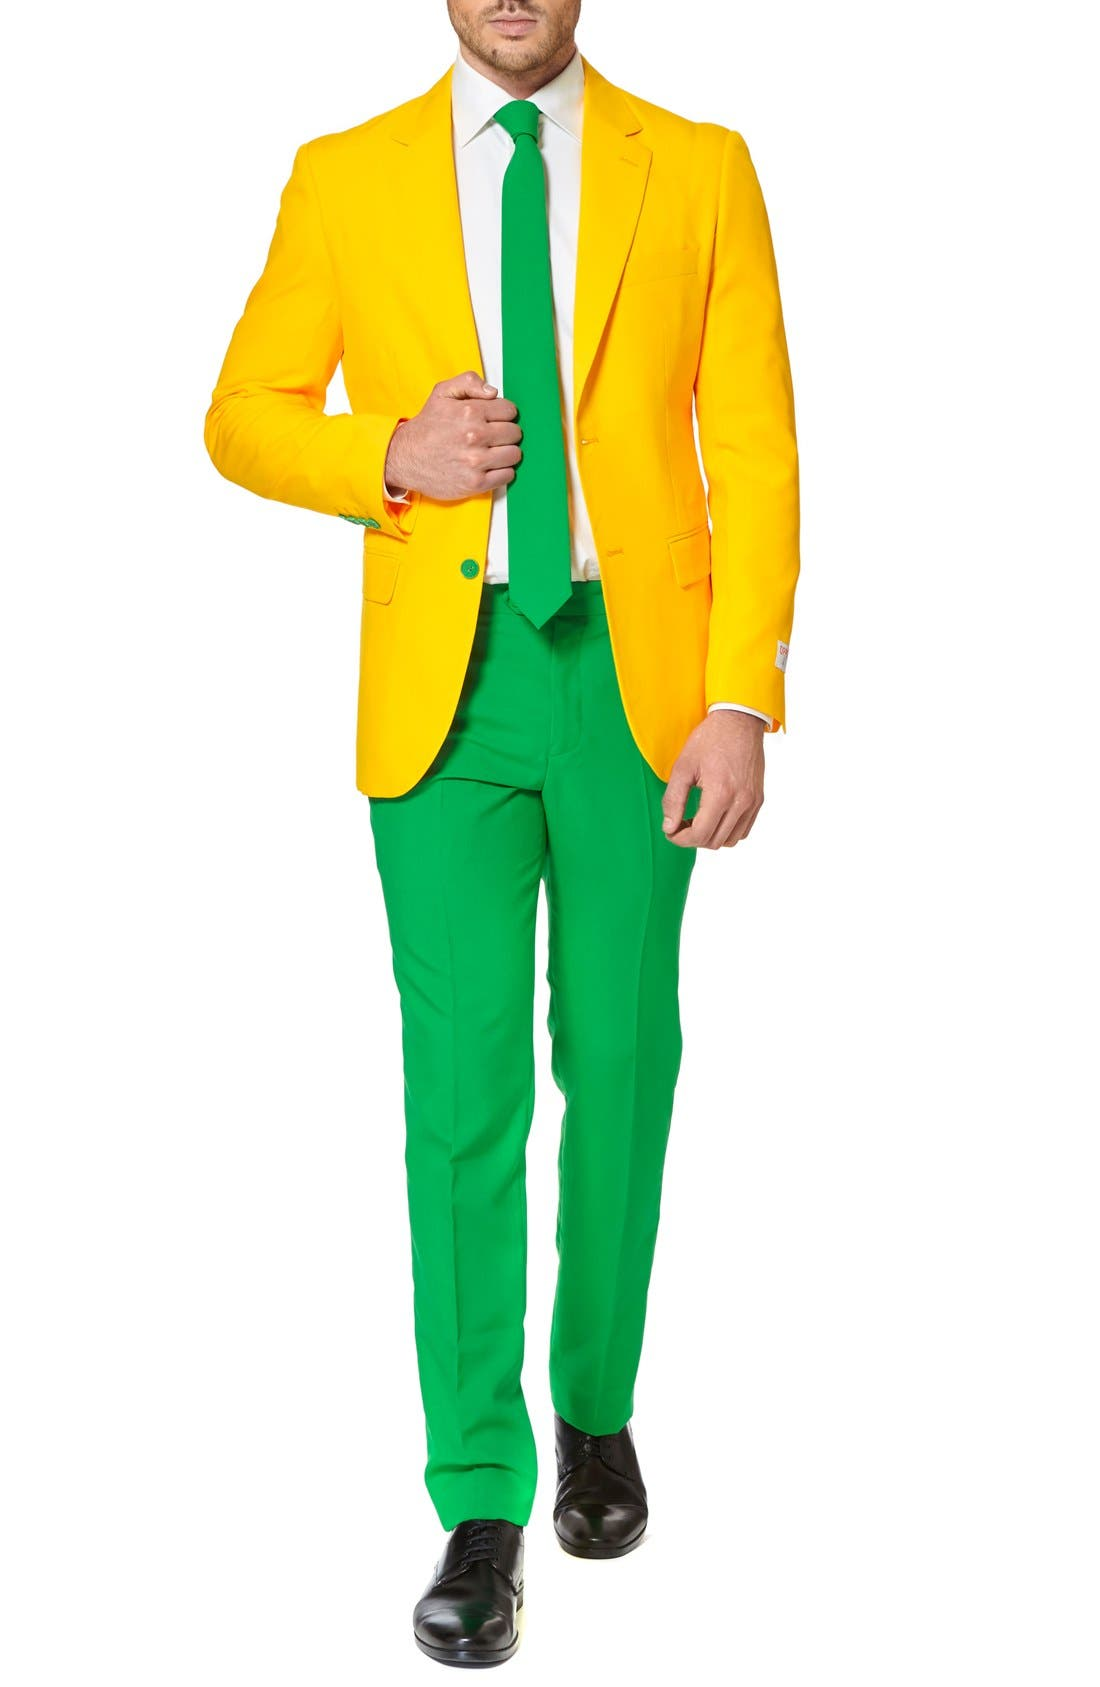 Alternate Image 1 Selected - OppoSuits 'Green & Gold' Trim Fit Suit with Tie